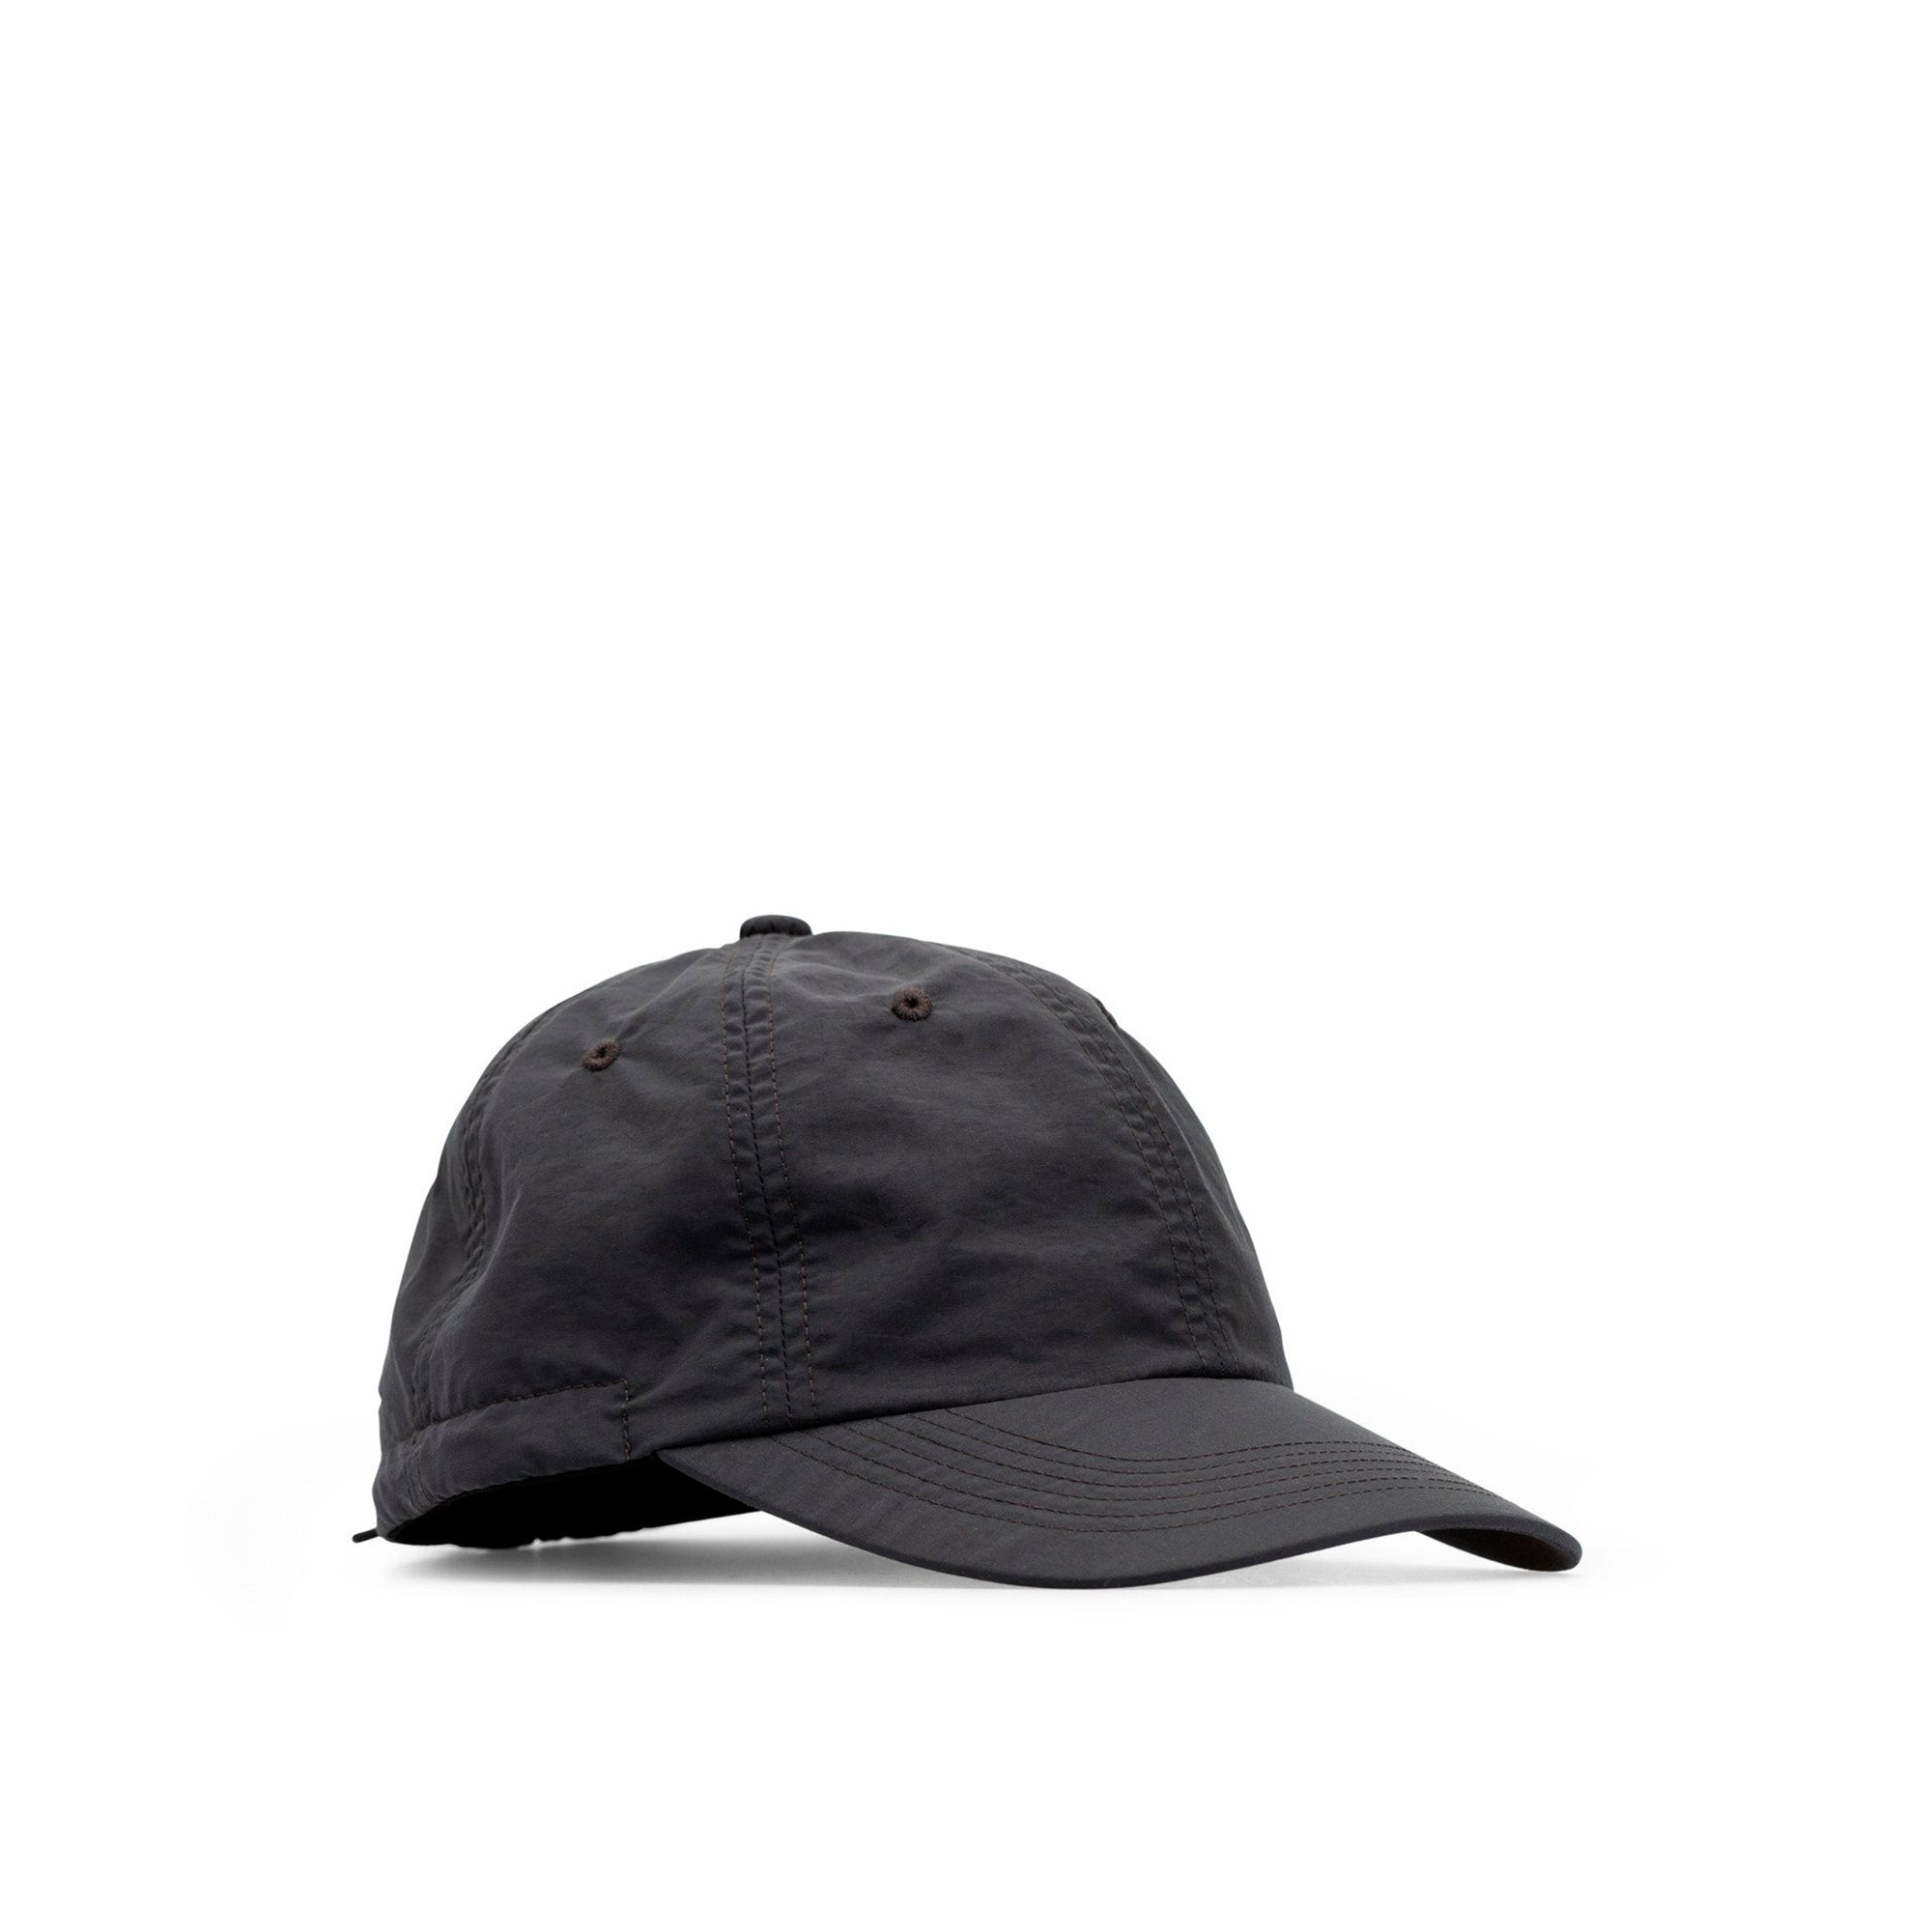 Norse Projects Travel Sports Cap: Slate Grey - The Union Project